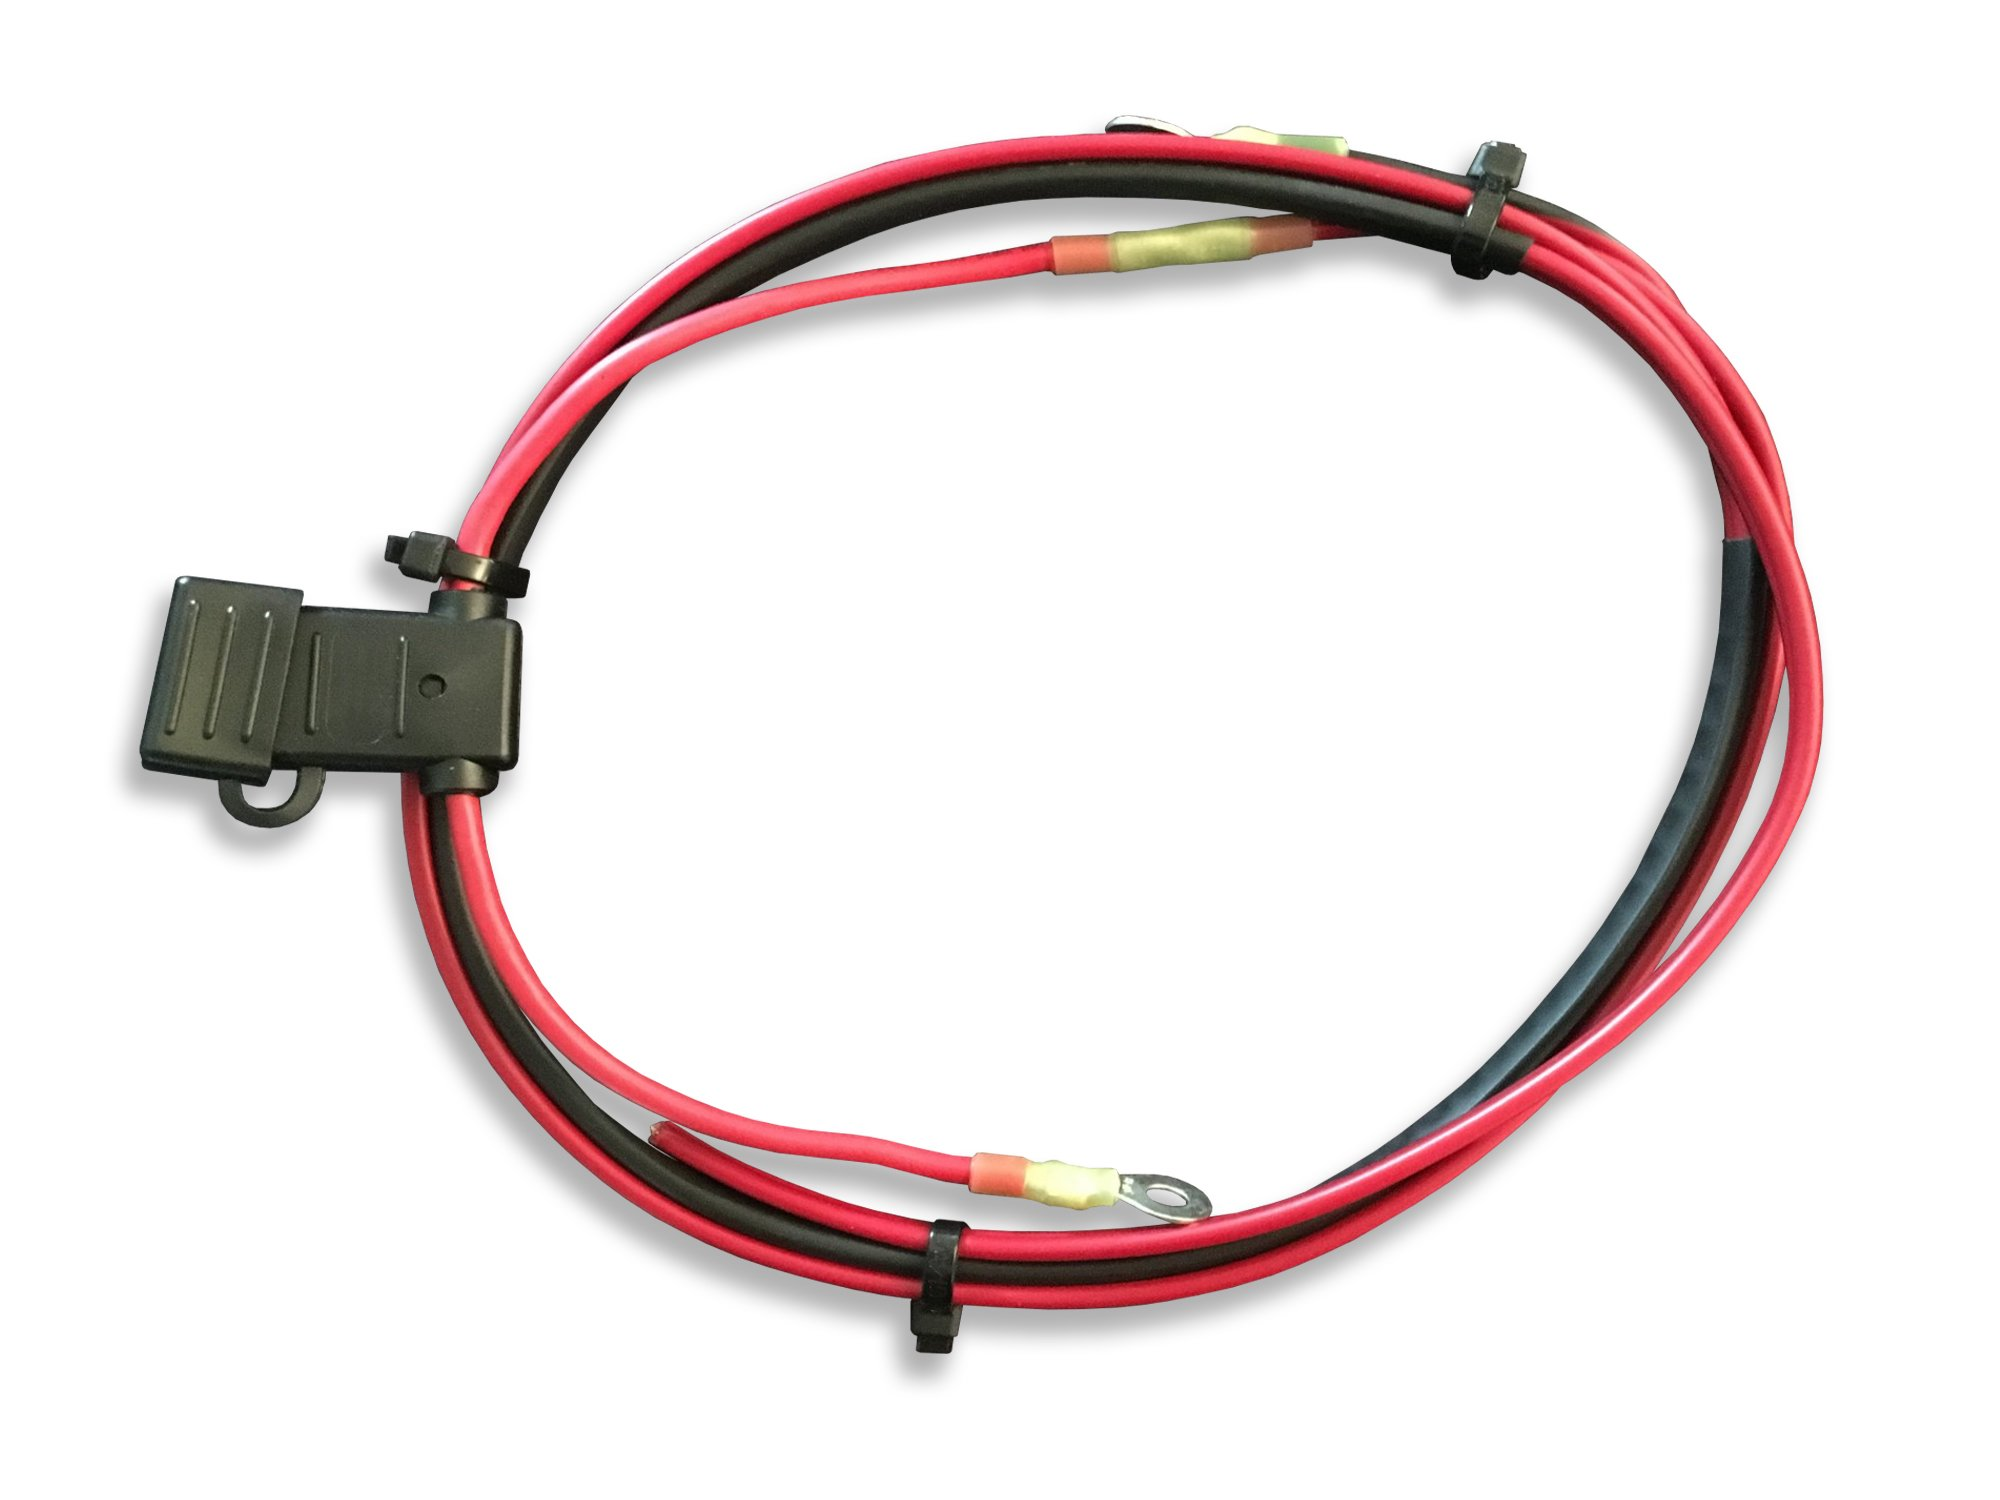 Power and ground for amplifier upgrade on Harley Davidson motorcycles.